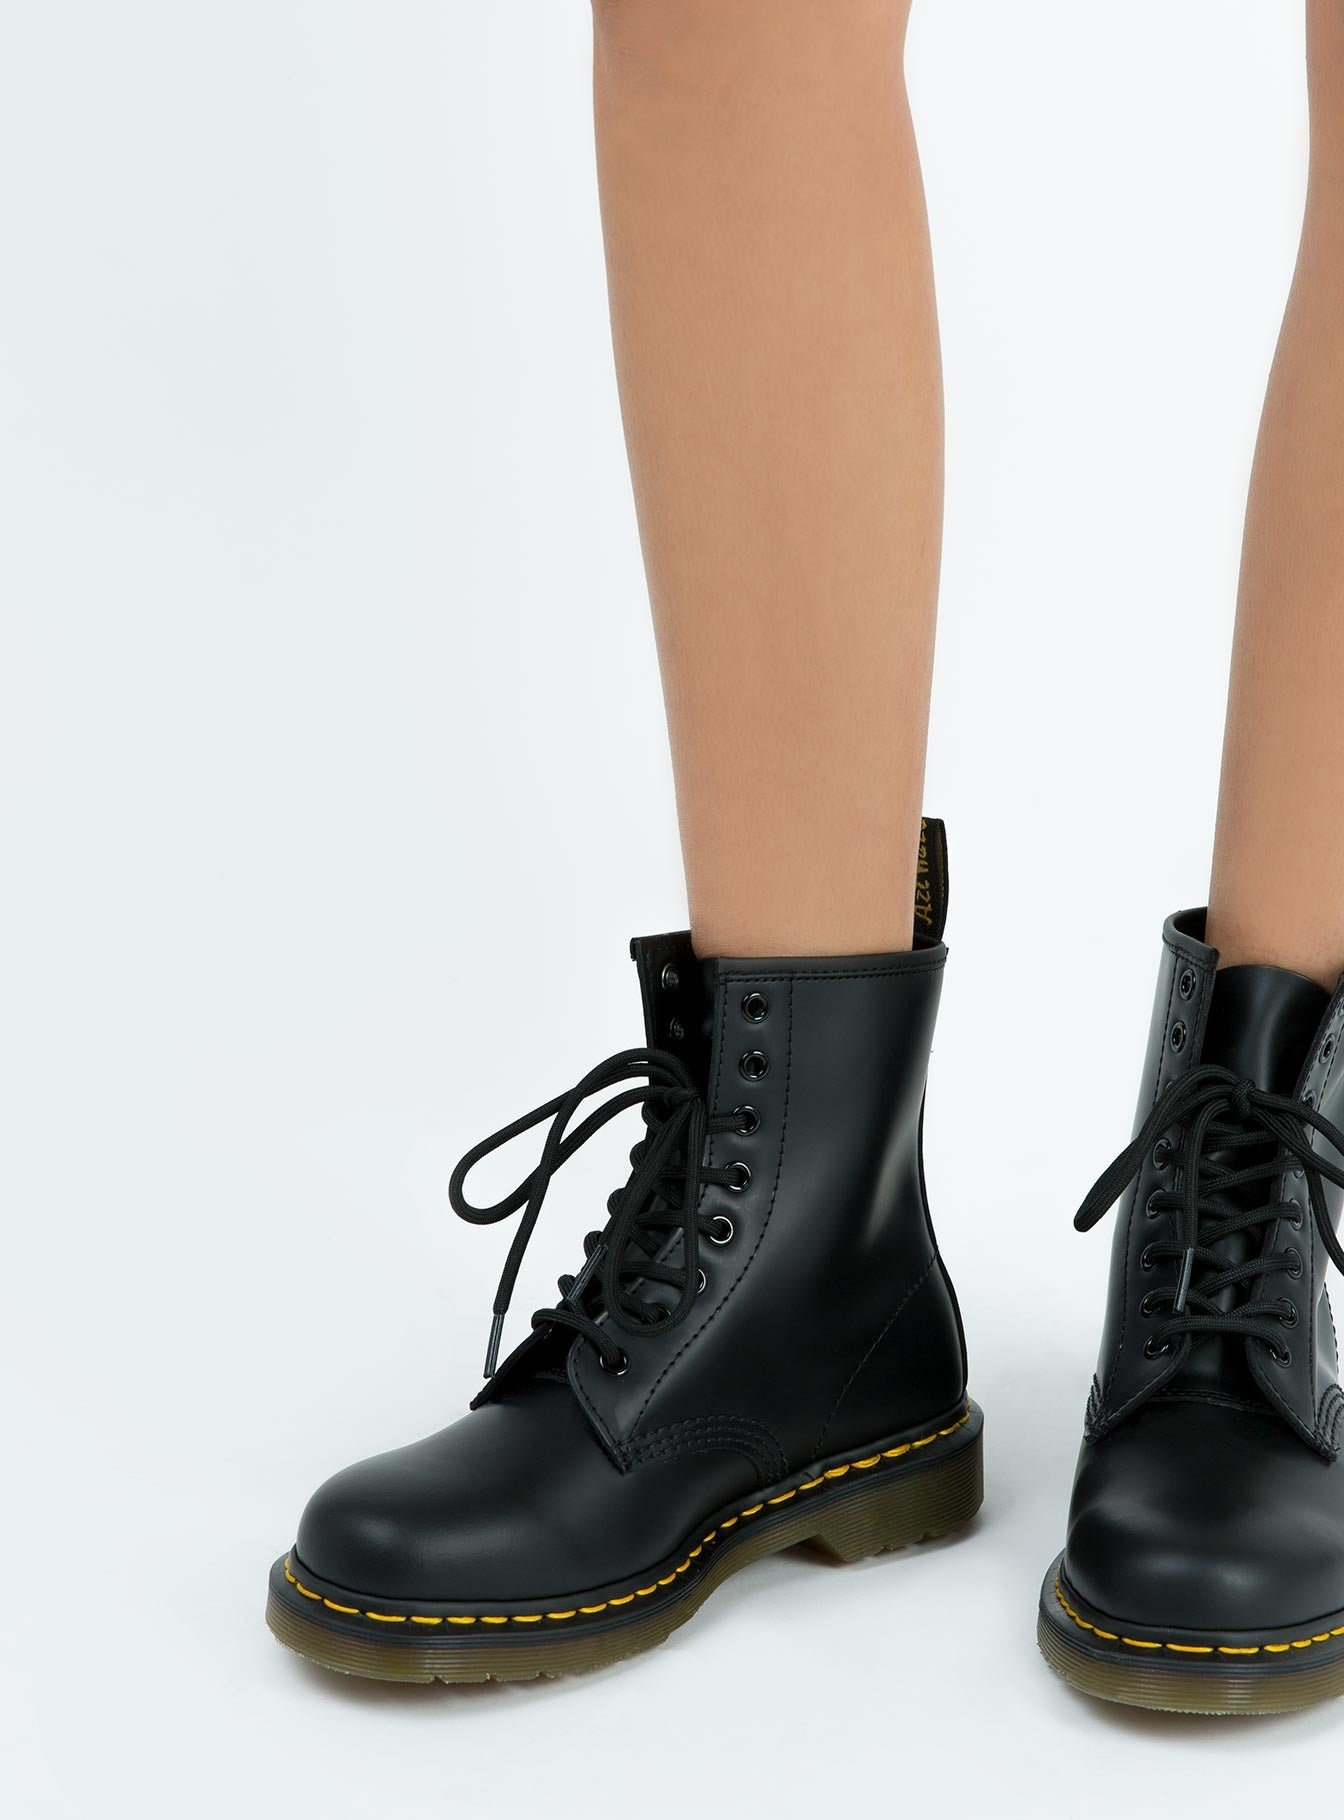 Dr. Martens 1460 Smooth Boots – Princess Polly AUS